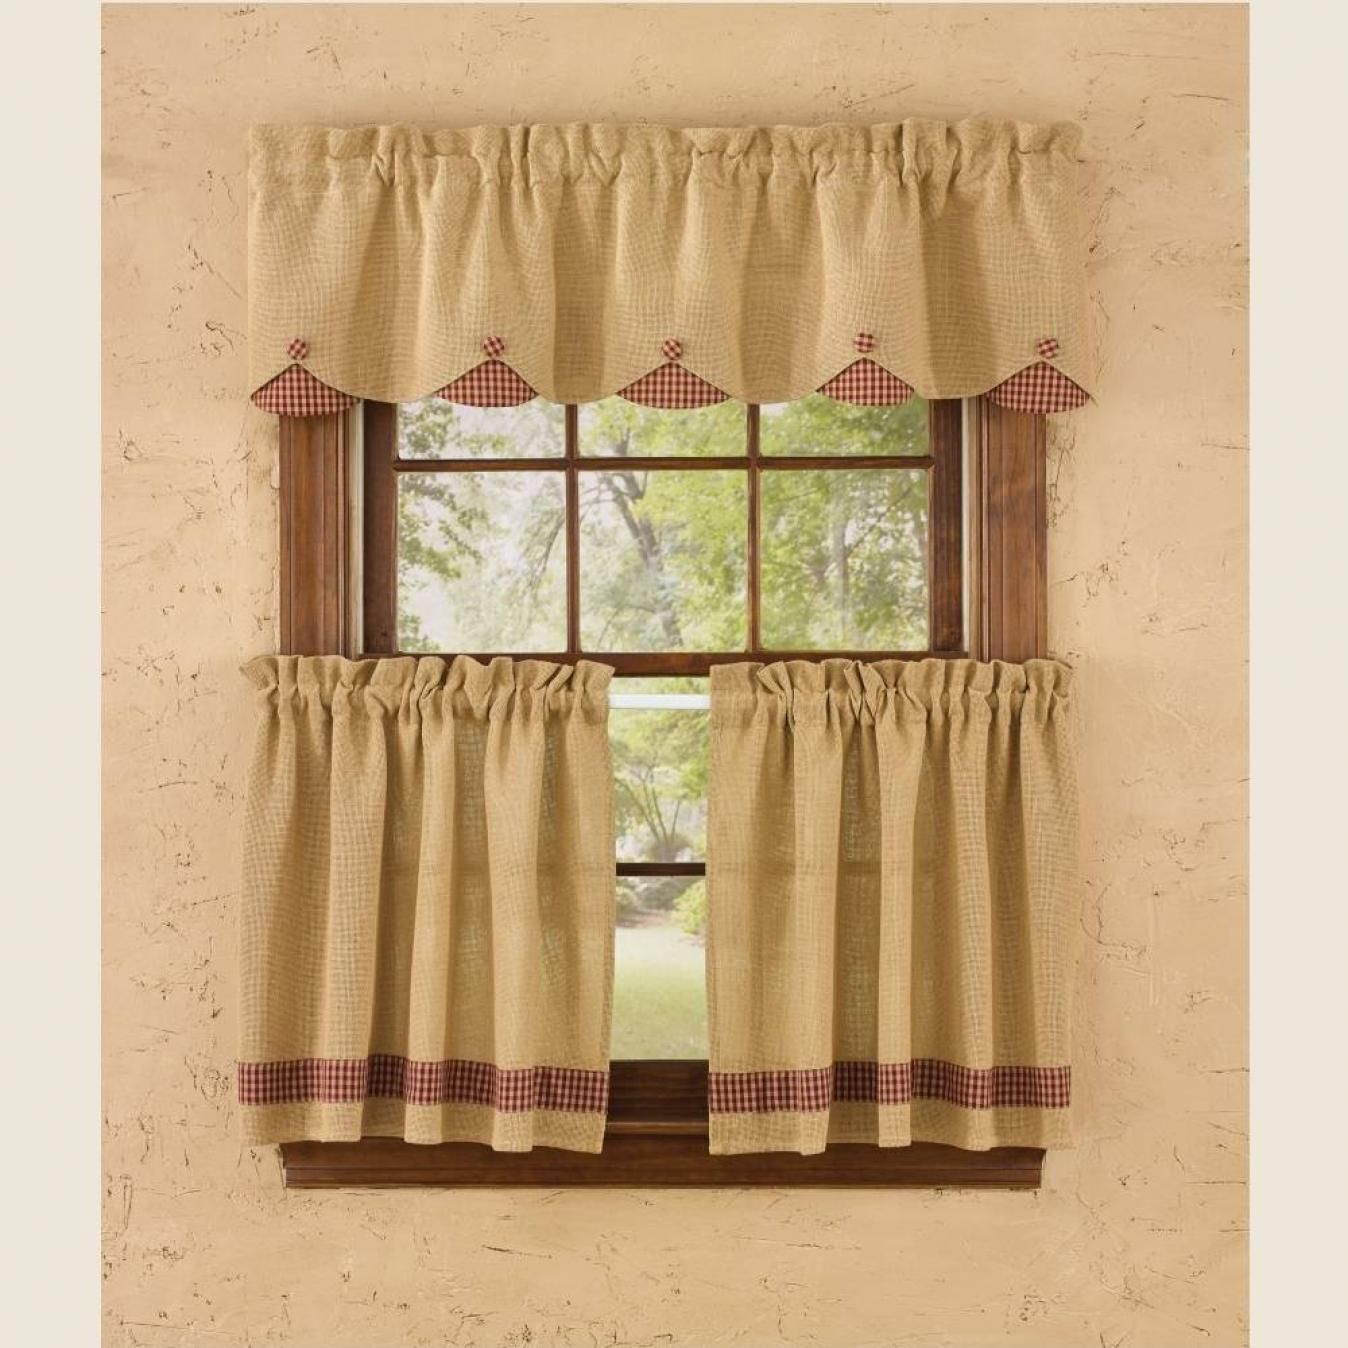 Ntry scalloped valance curtains valance hessian and valance curtains